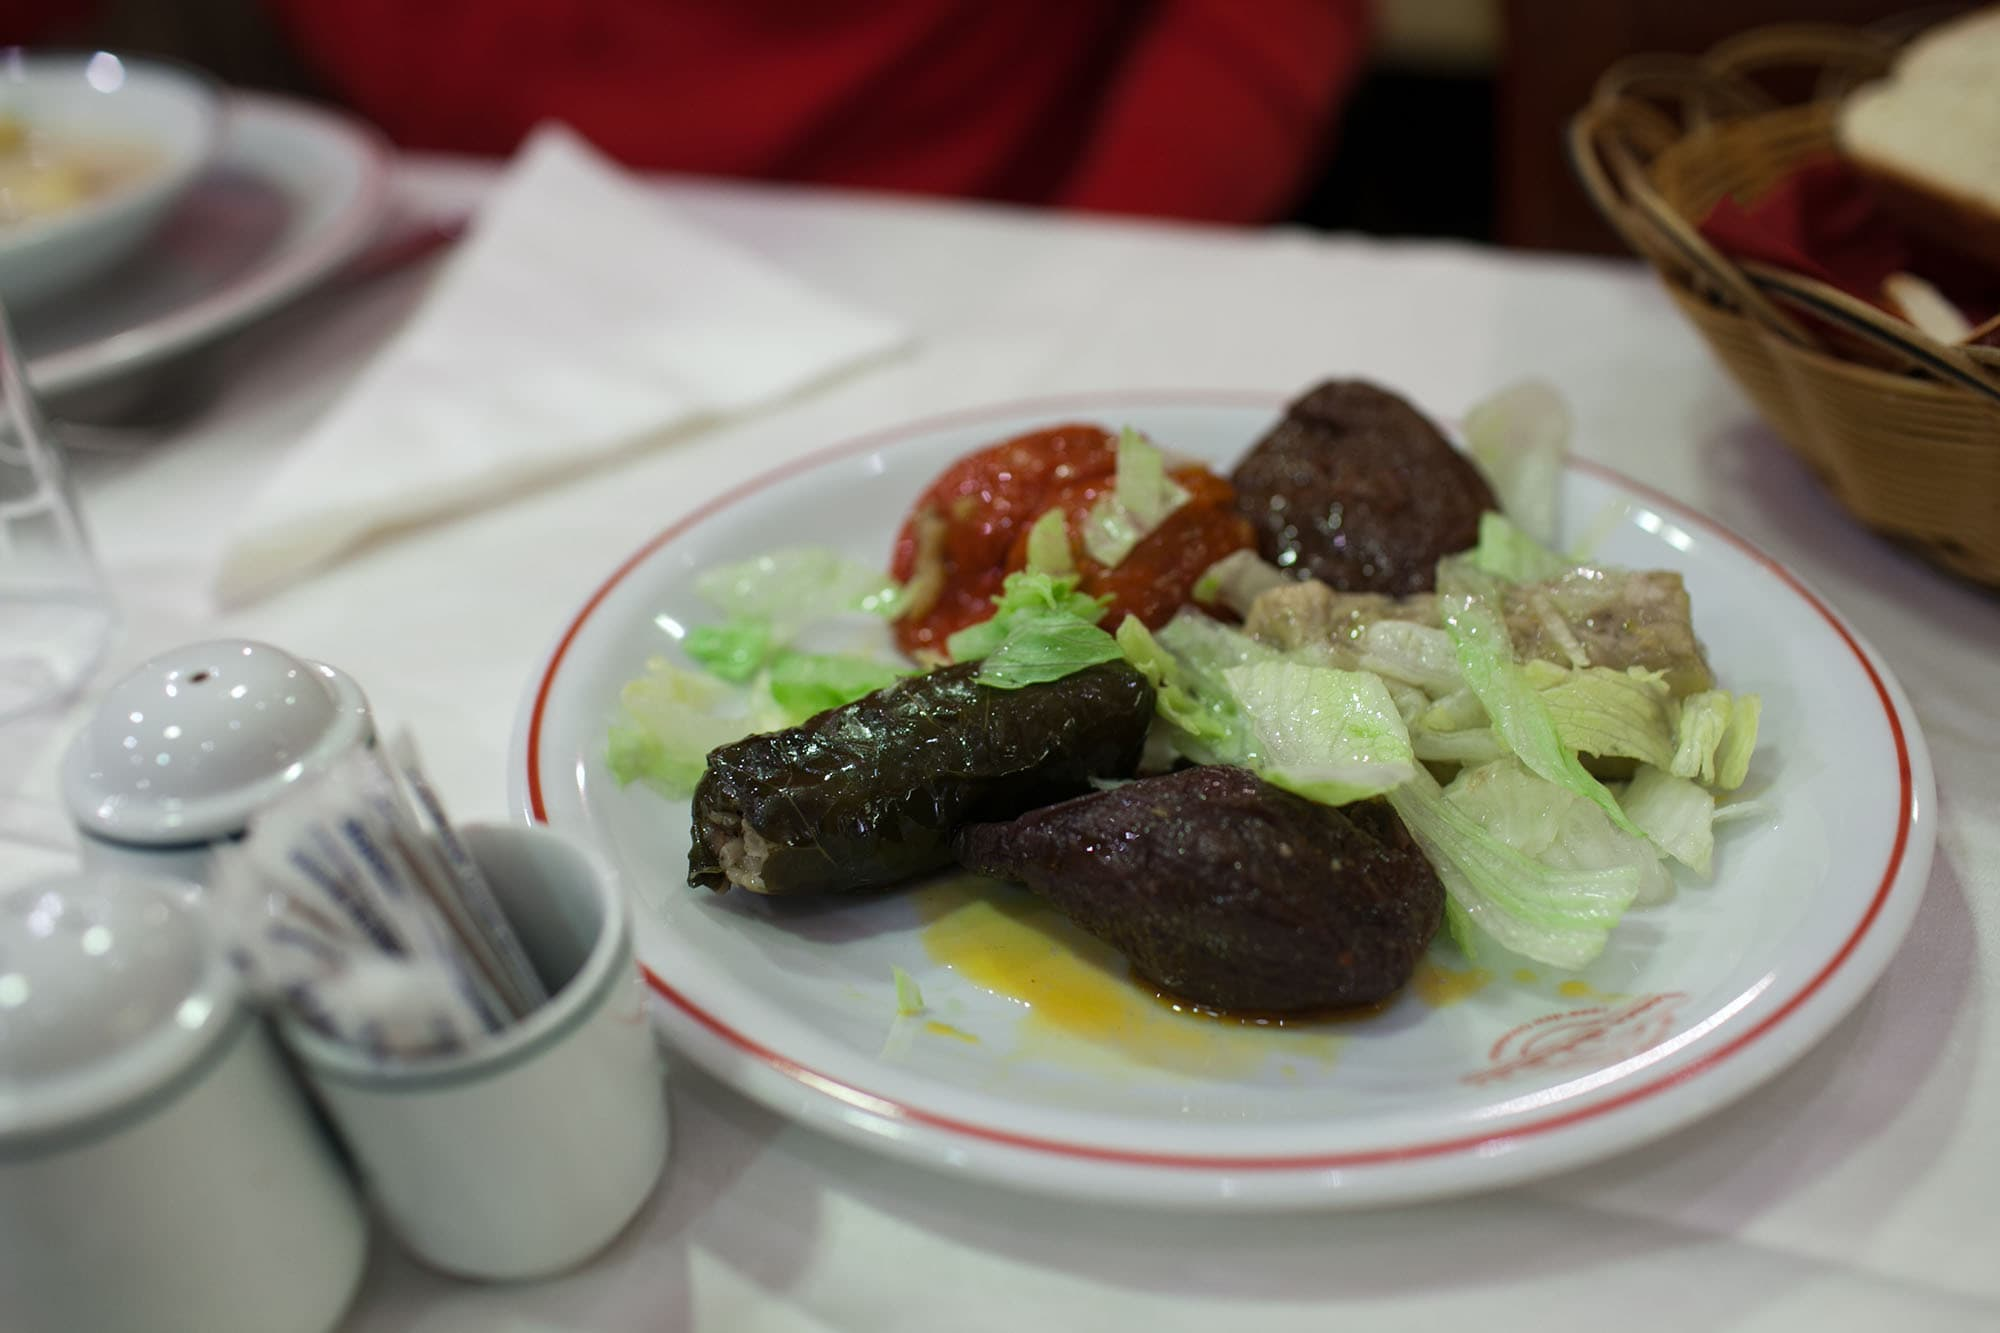 Dolma at Haci Abdullah restaurant in Istanbul, Turkey